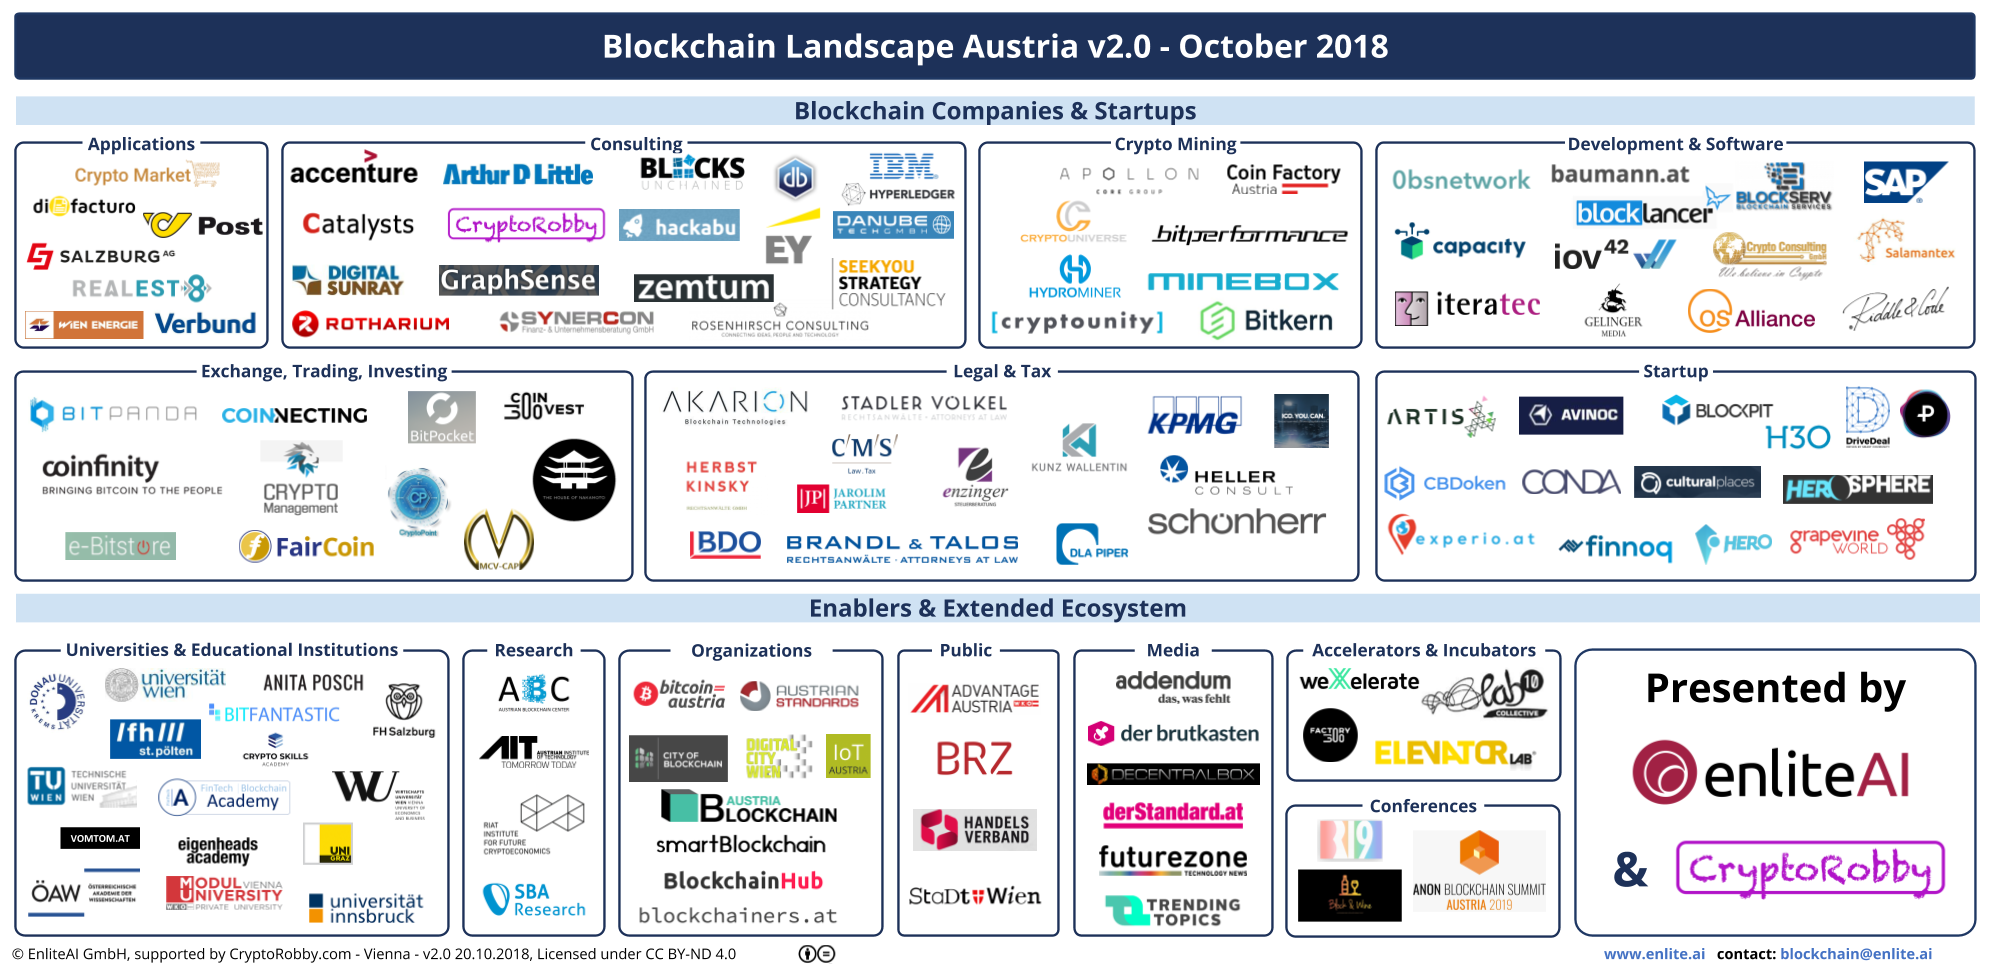 Blockchain Landscape Austria updated to v2.0